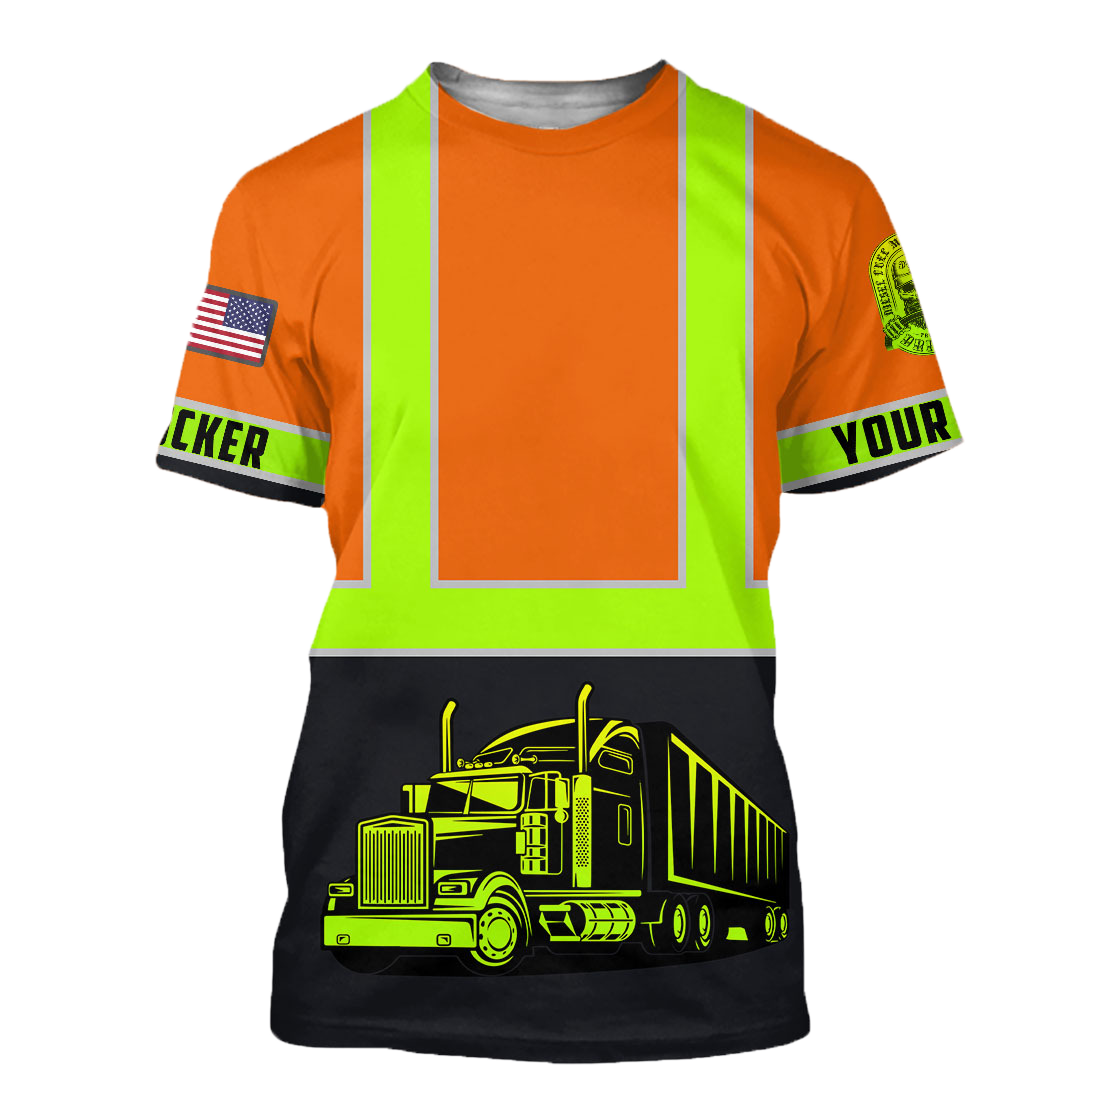 Personalized Trucker Safety 3D Printed Shirts TN - T-shirt / XXL